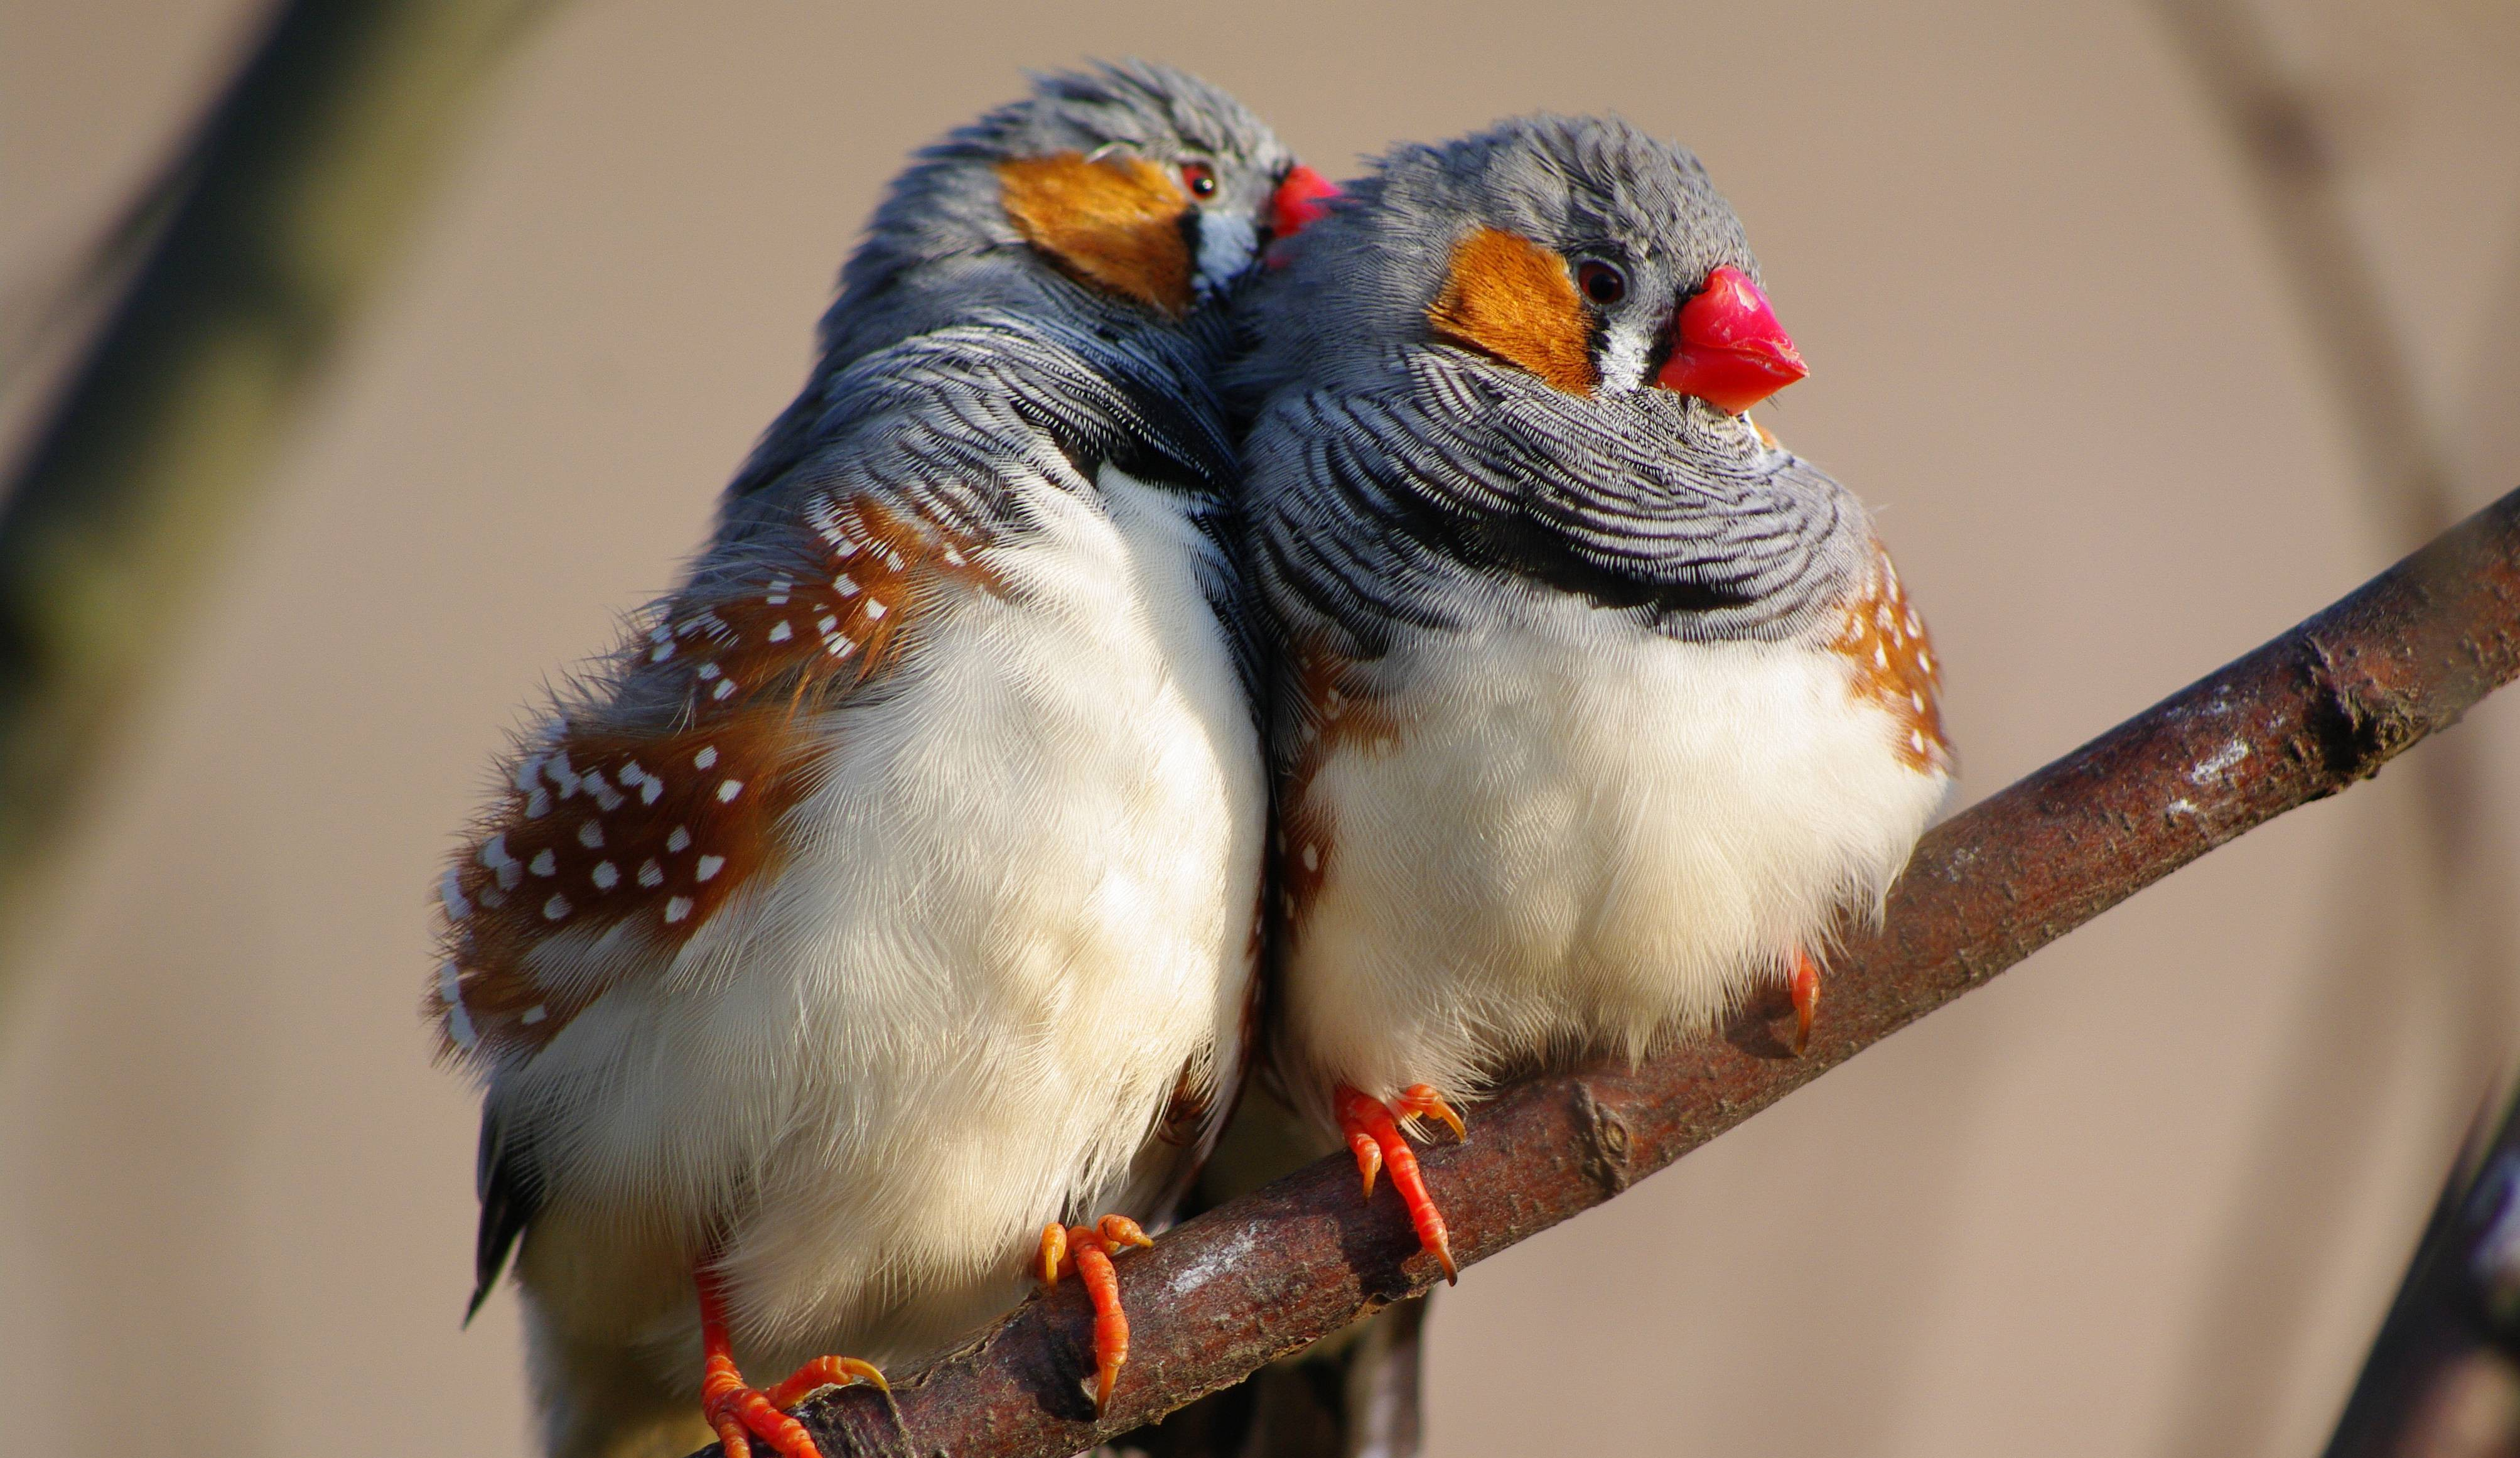 Wallpaper Zebra Finch 5k 4k Wallpaper Indonesia East